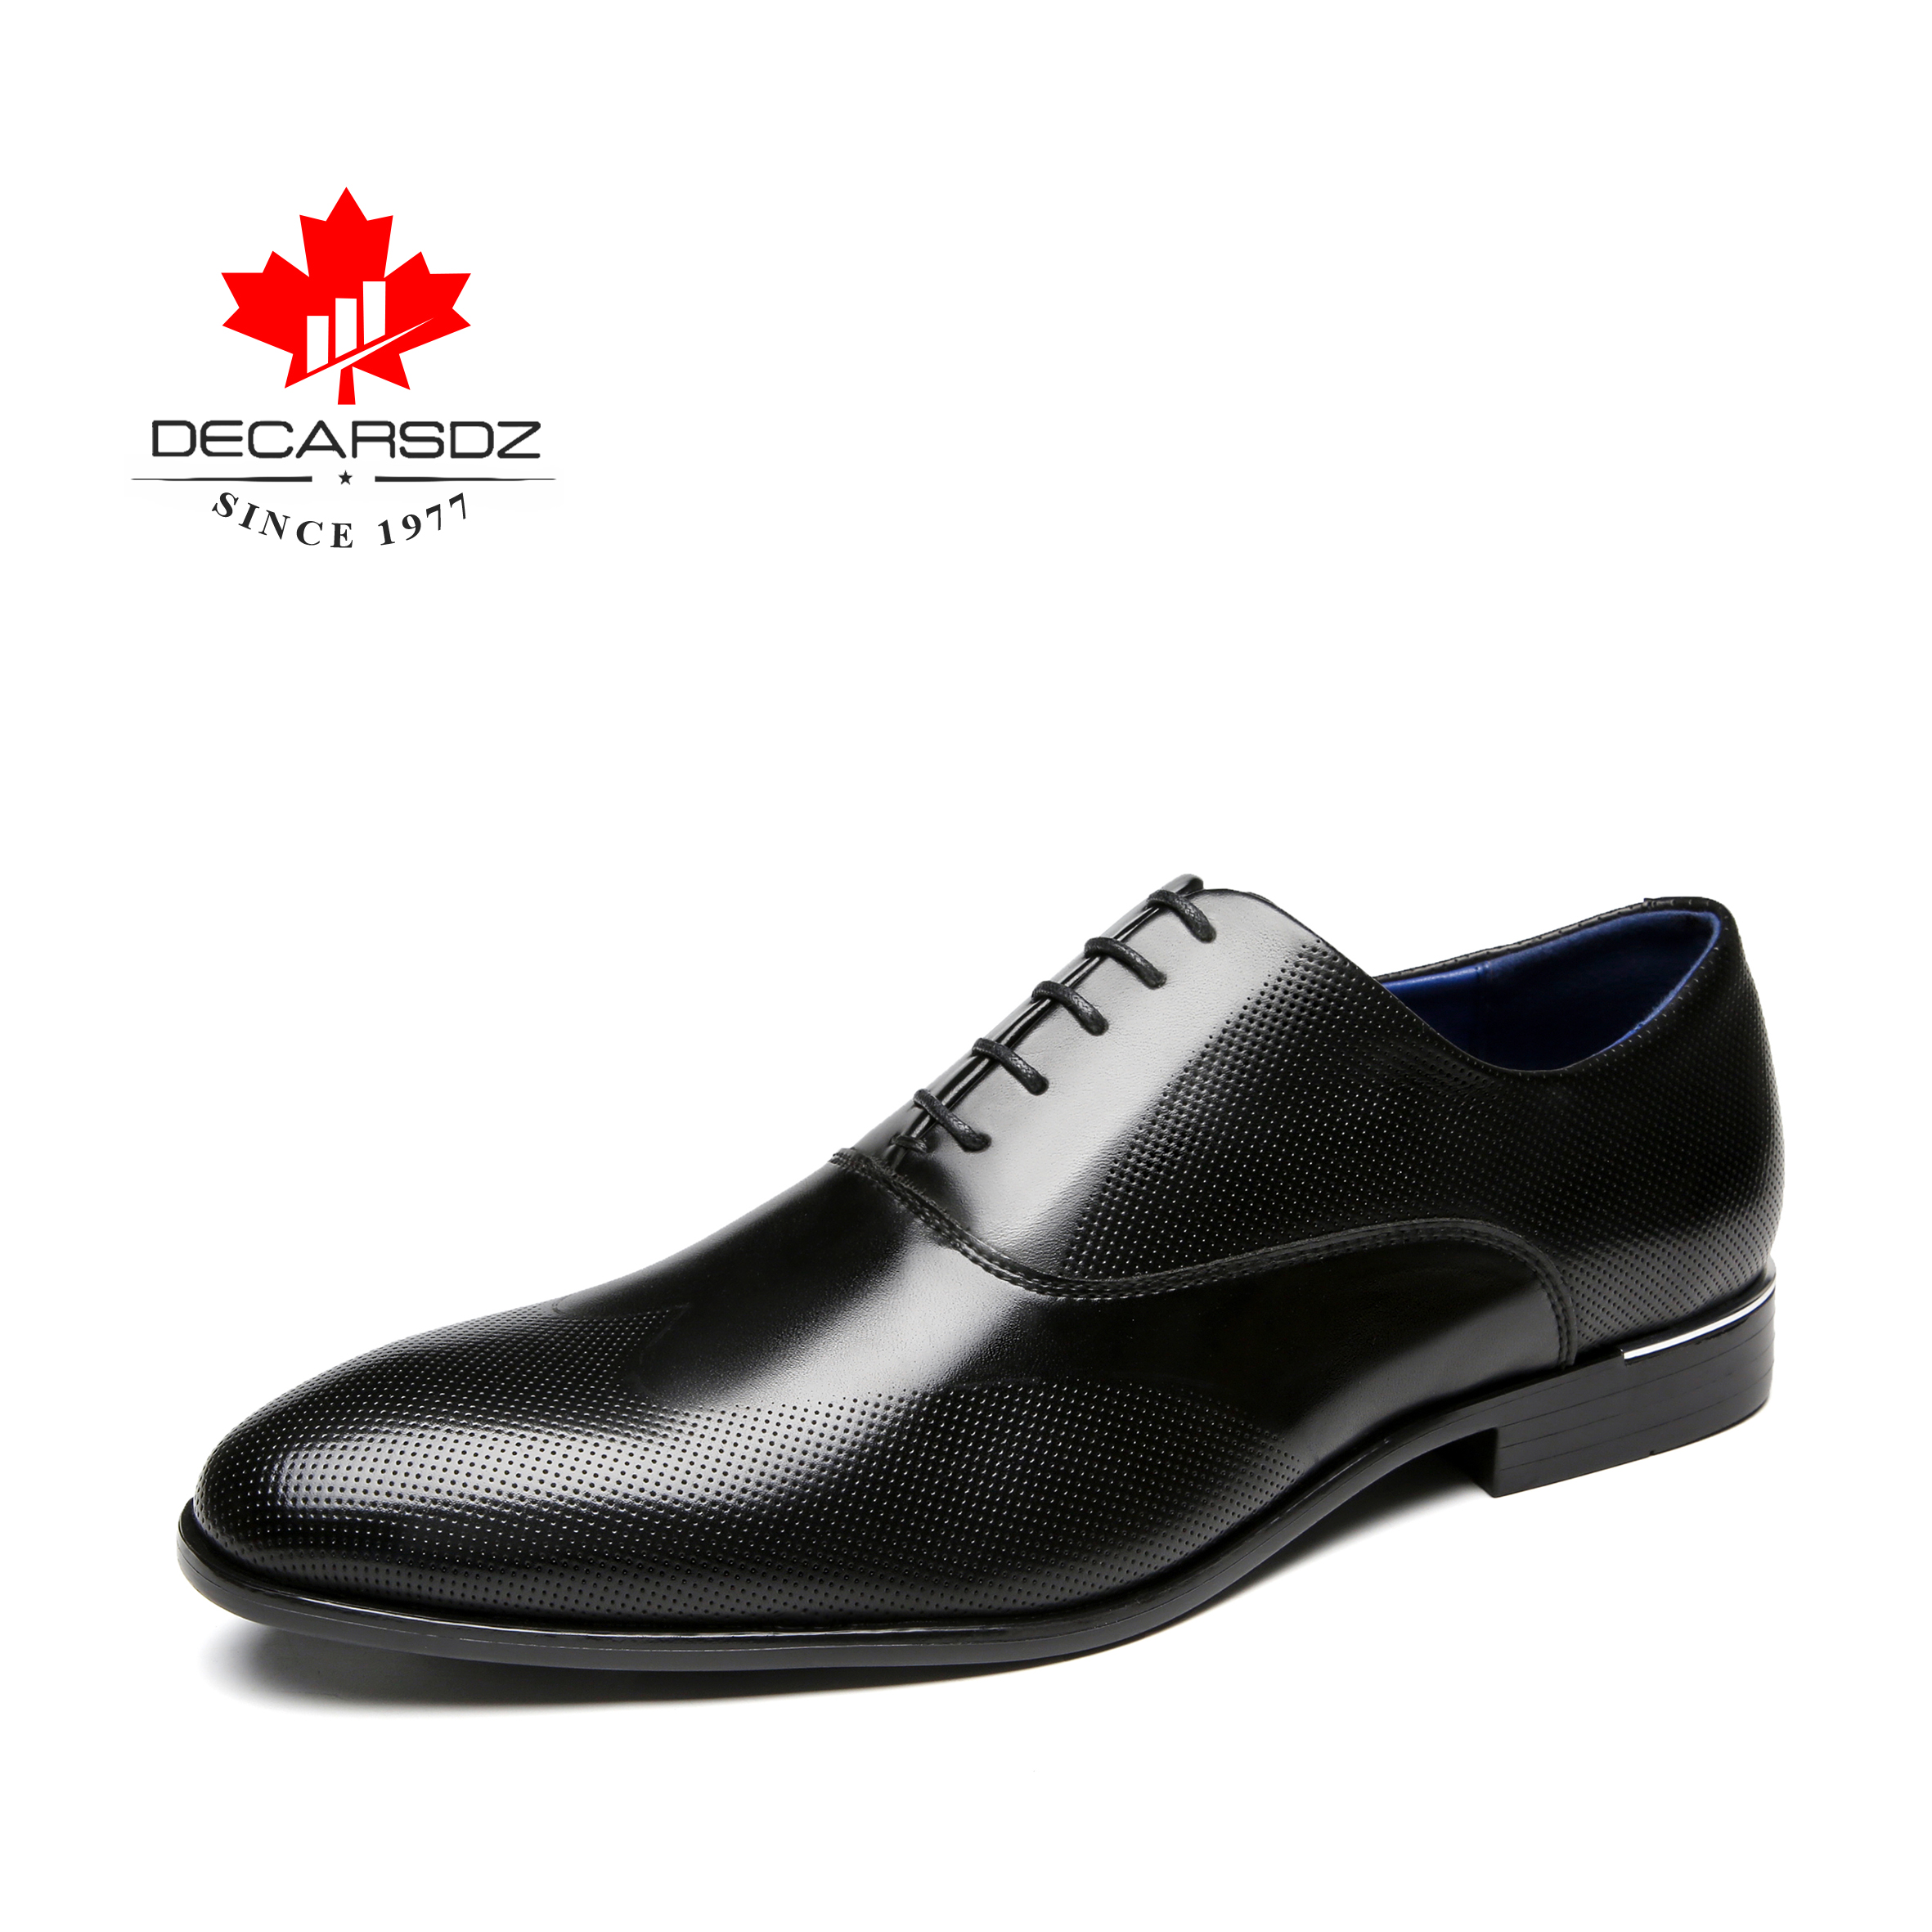 Men s Shoes 2019 Business Casual Shoes For Men Dress Shoes Brand Fashion Leather Shoes Office